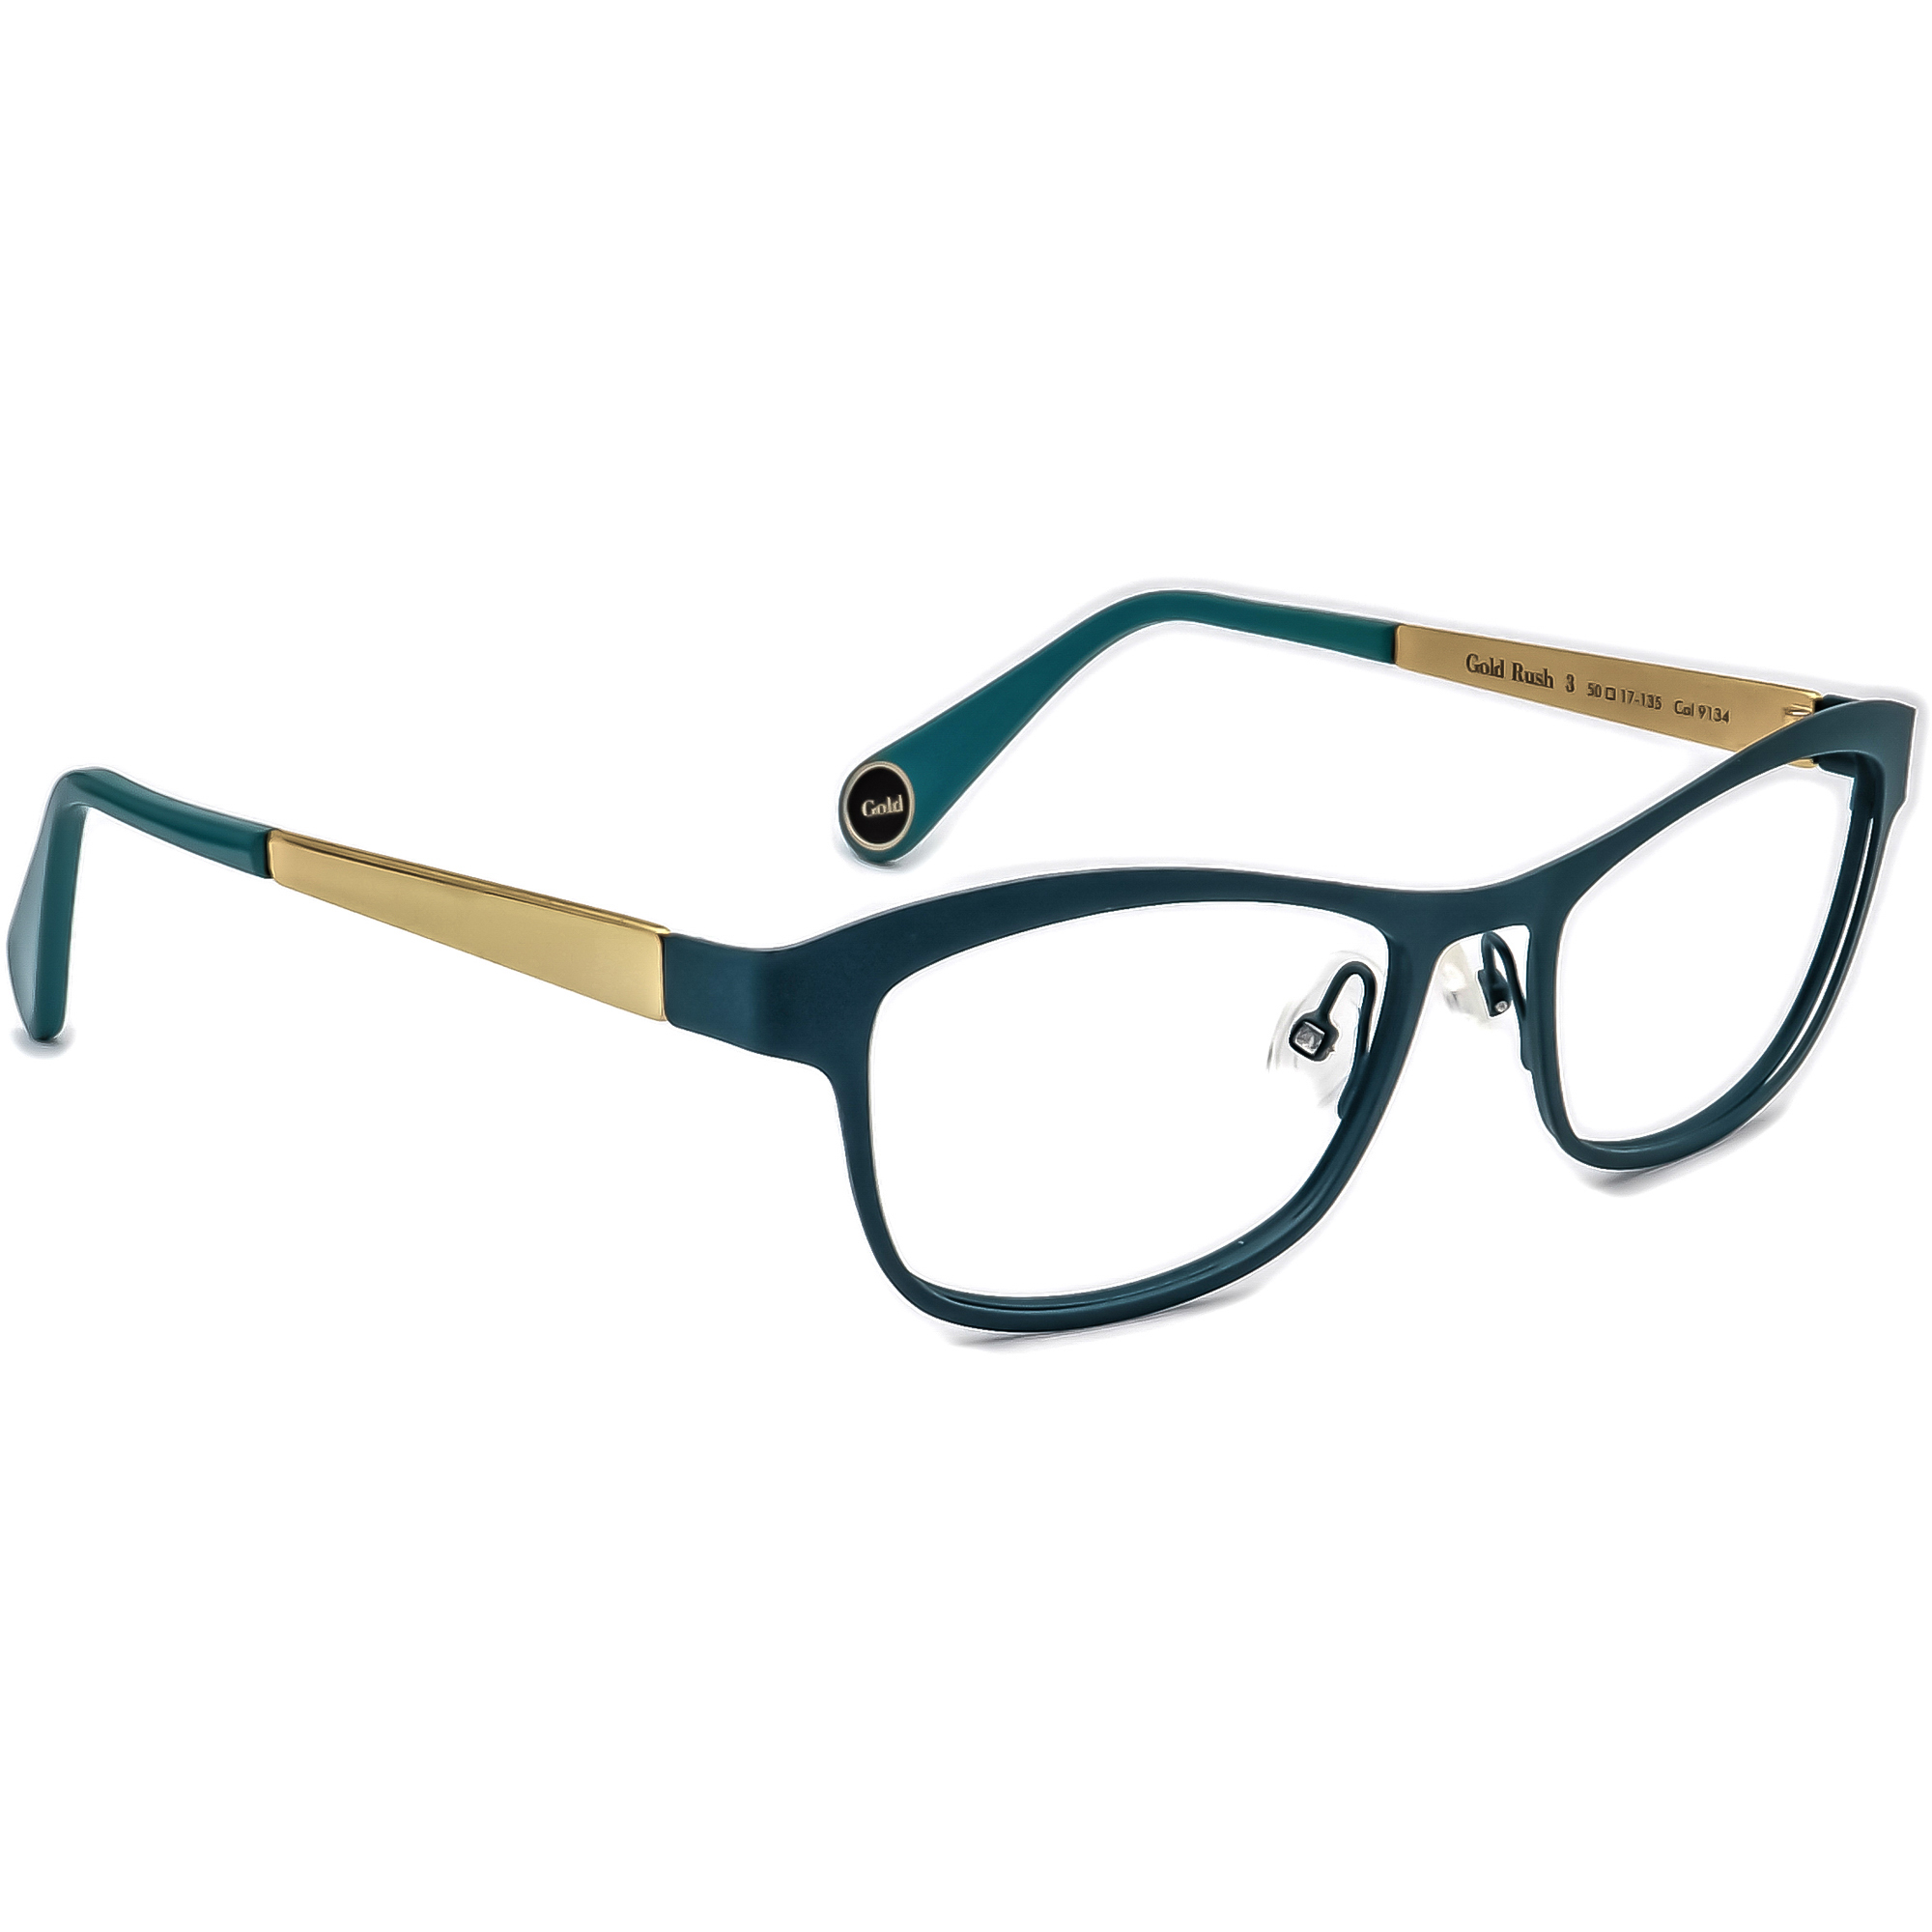 Woow Gold Rush 3 Col 9134 Eyeglasses